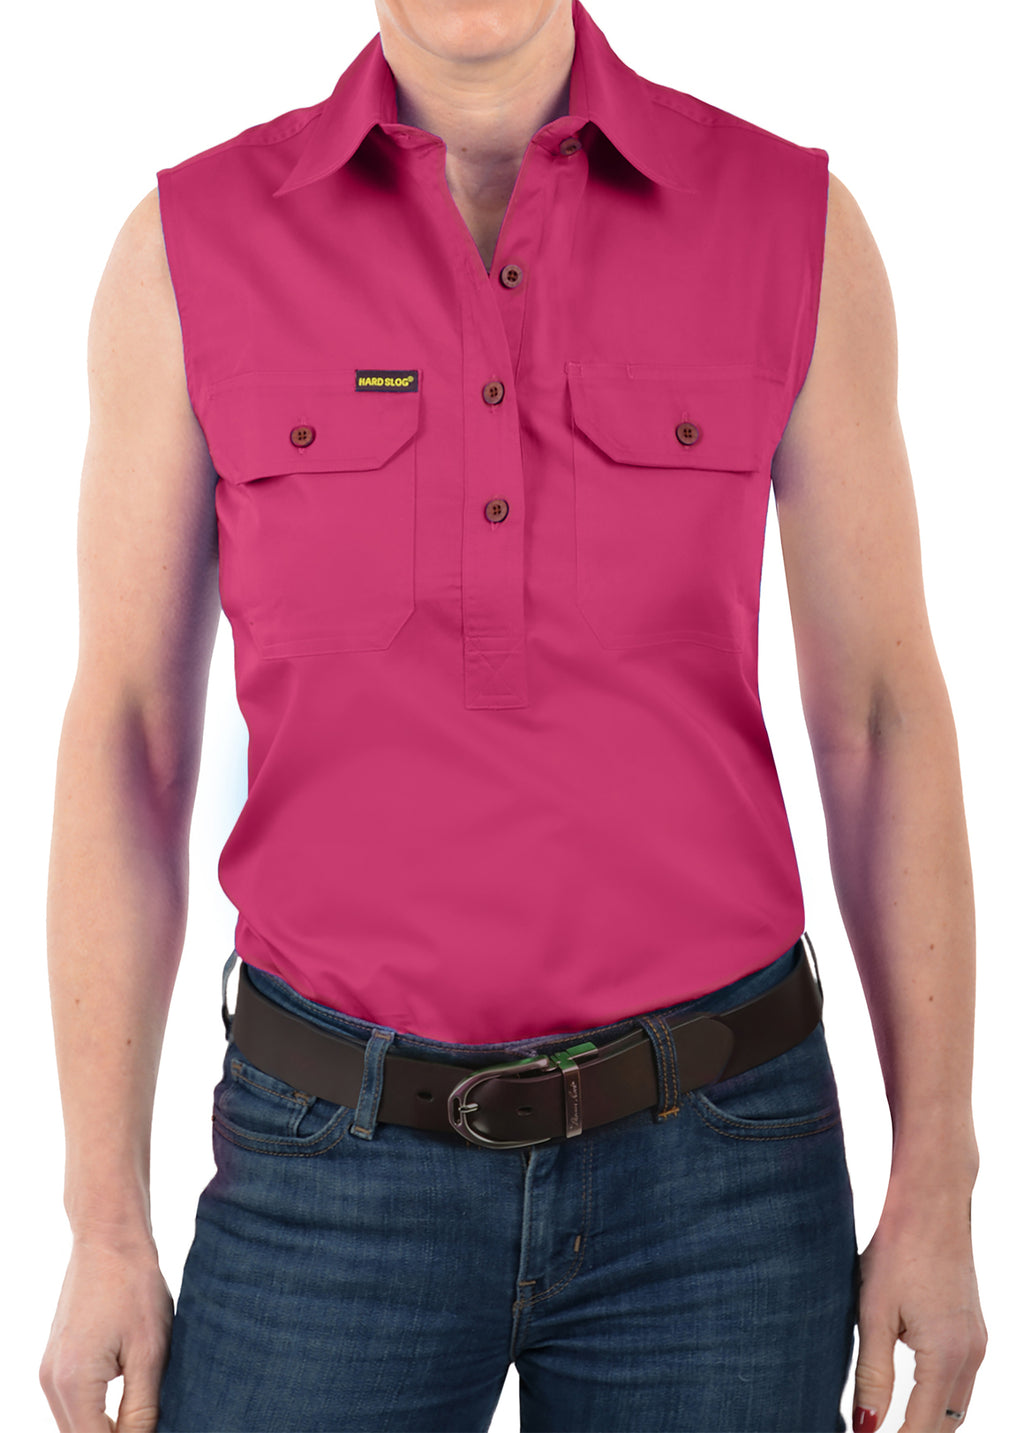 Womens Half Placket Light cotton Sleeve less Shirt - Fuchsia